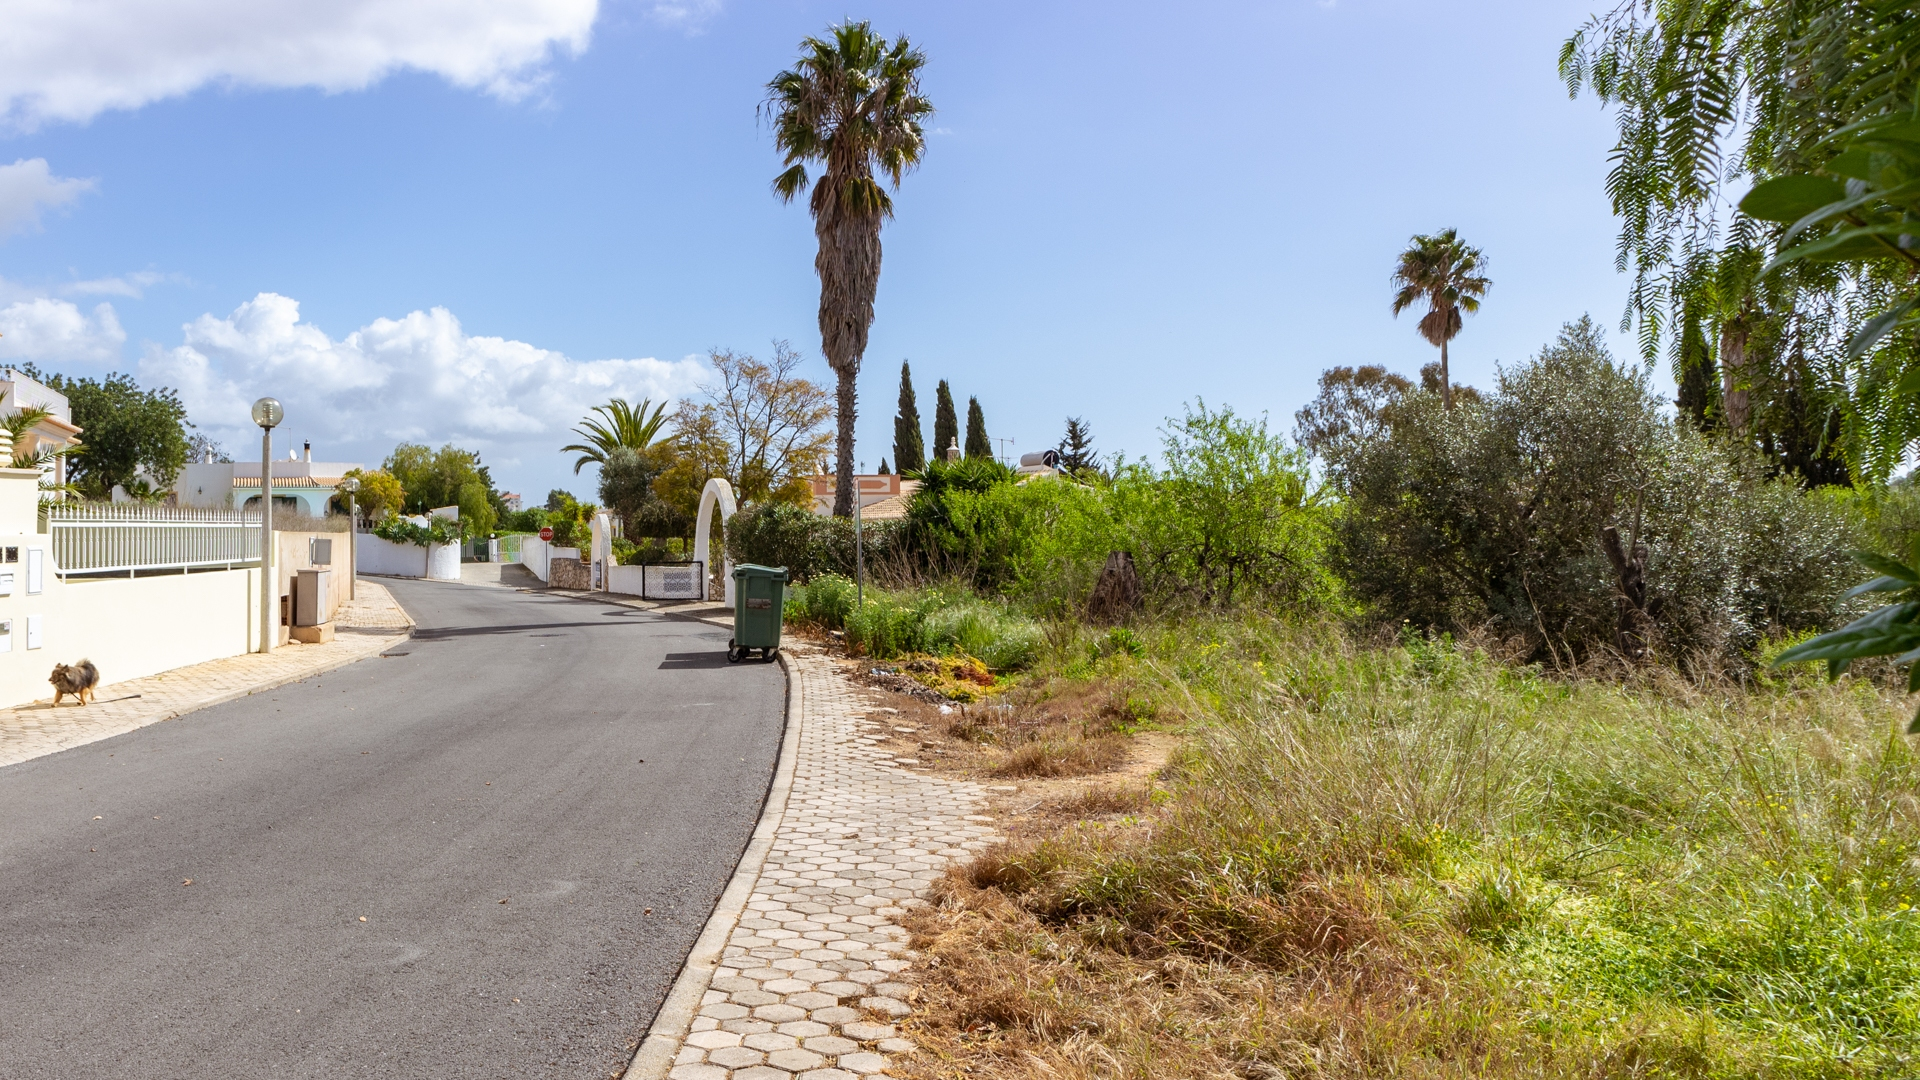 Final plot on exclusive urbanization between Estômbar and Lagoa | VM1387 Plot with permission to build a large villa with pool and garden, located close to all amenities with good access, between Estômbar and Lagoa.